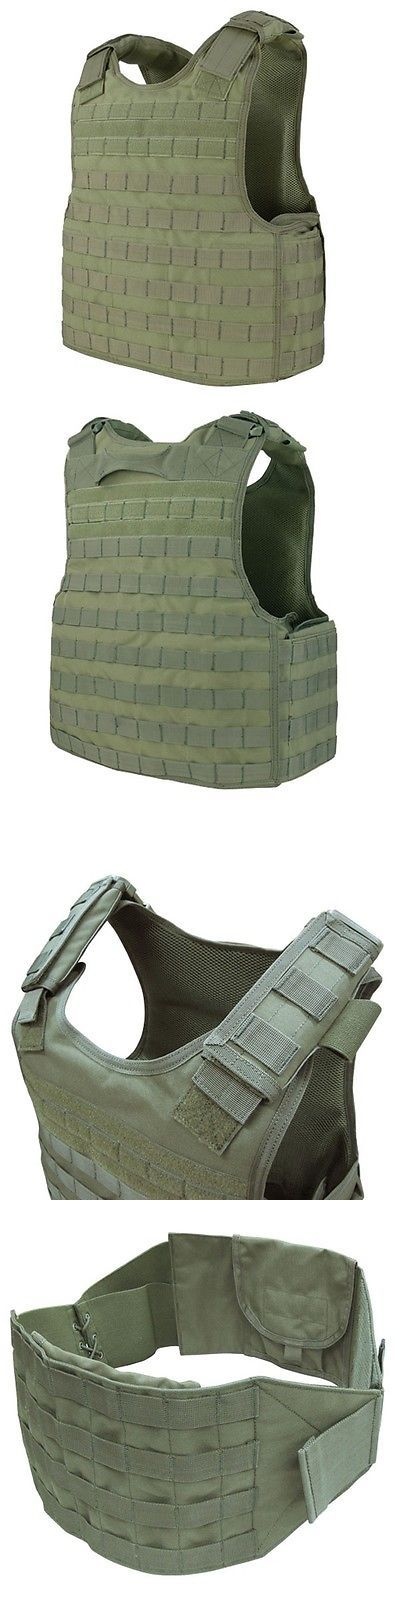 Clothing and Protective Gear 159044: Condor Od Green Dfpc Tactical Defender Molle Pals Body Armor Plate Carrier Vest BUY IT NOW ONLY: $95.95